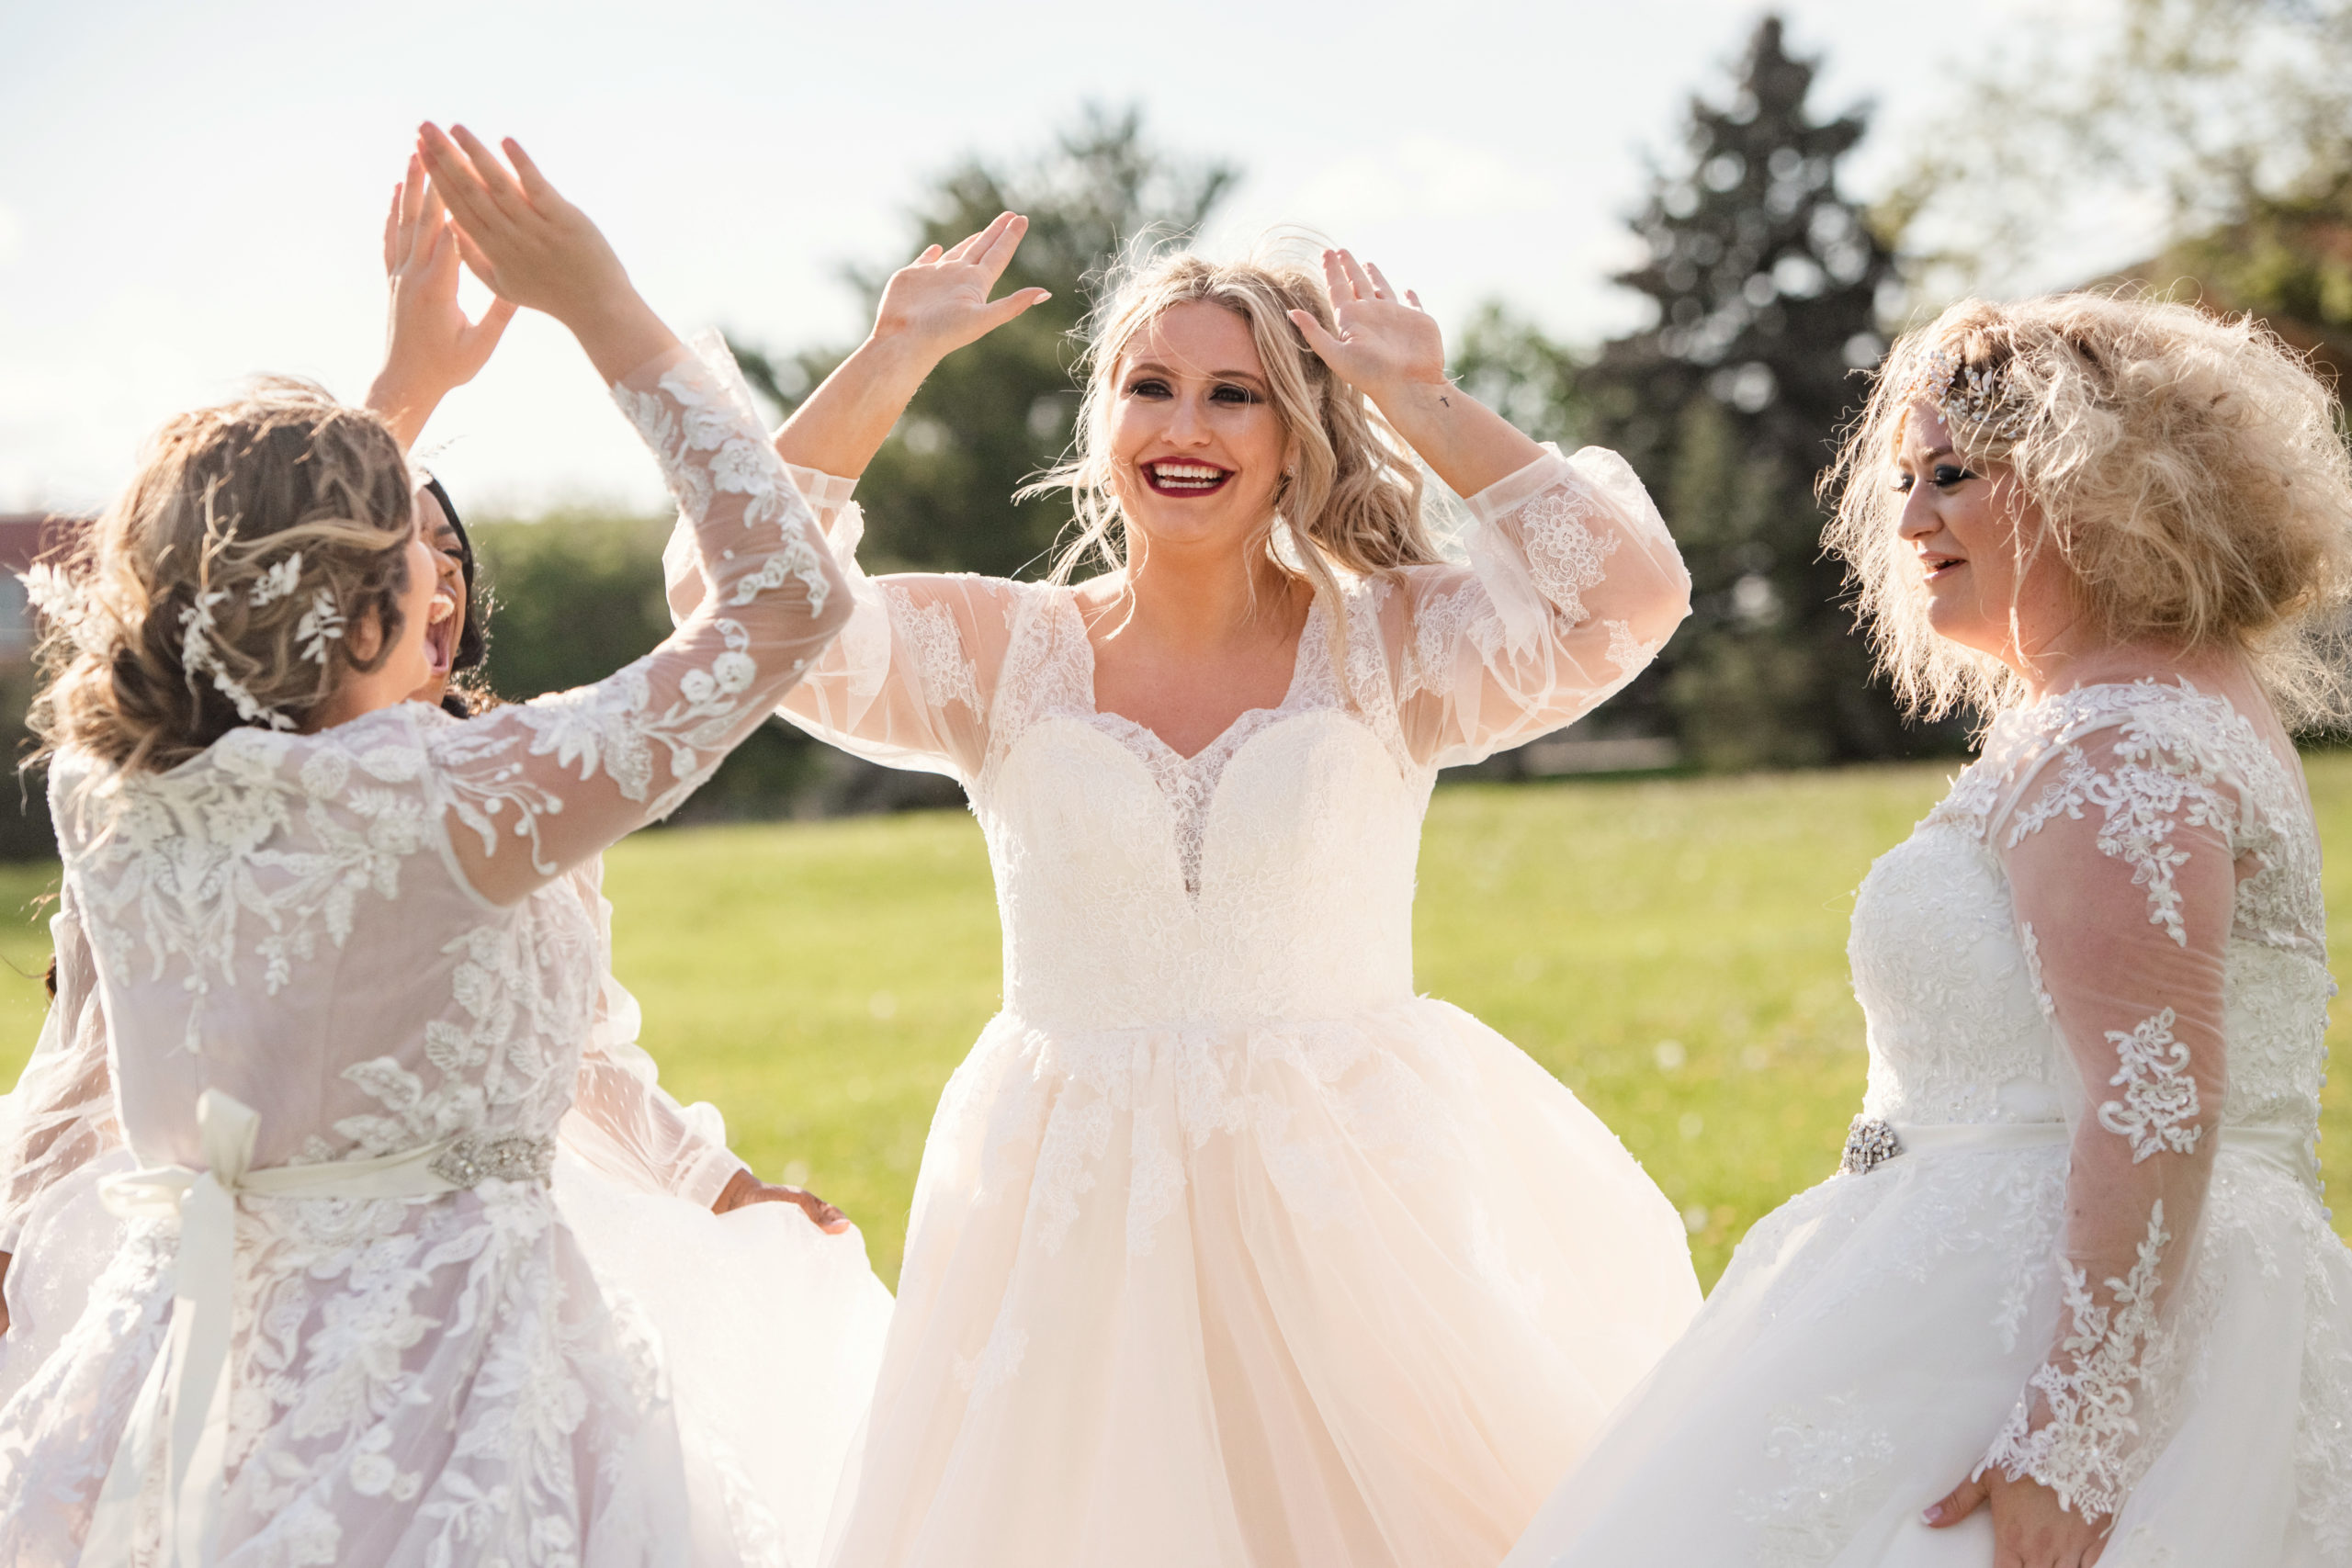 get matched with your personal wedding dress designer in columbus ohio